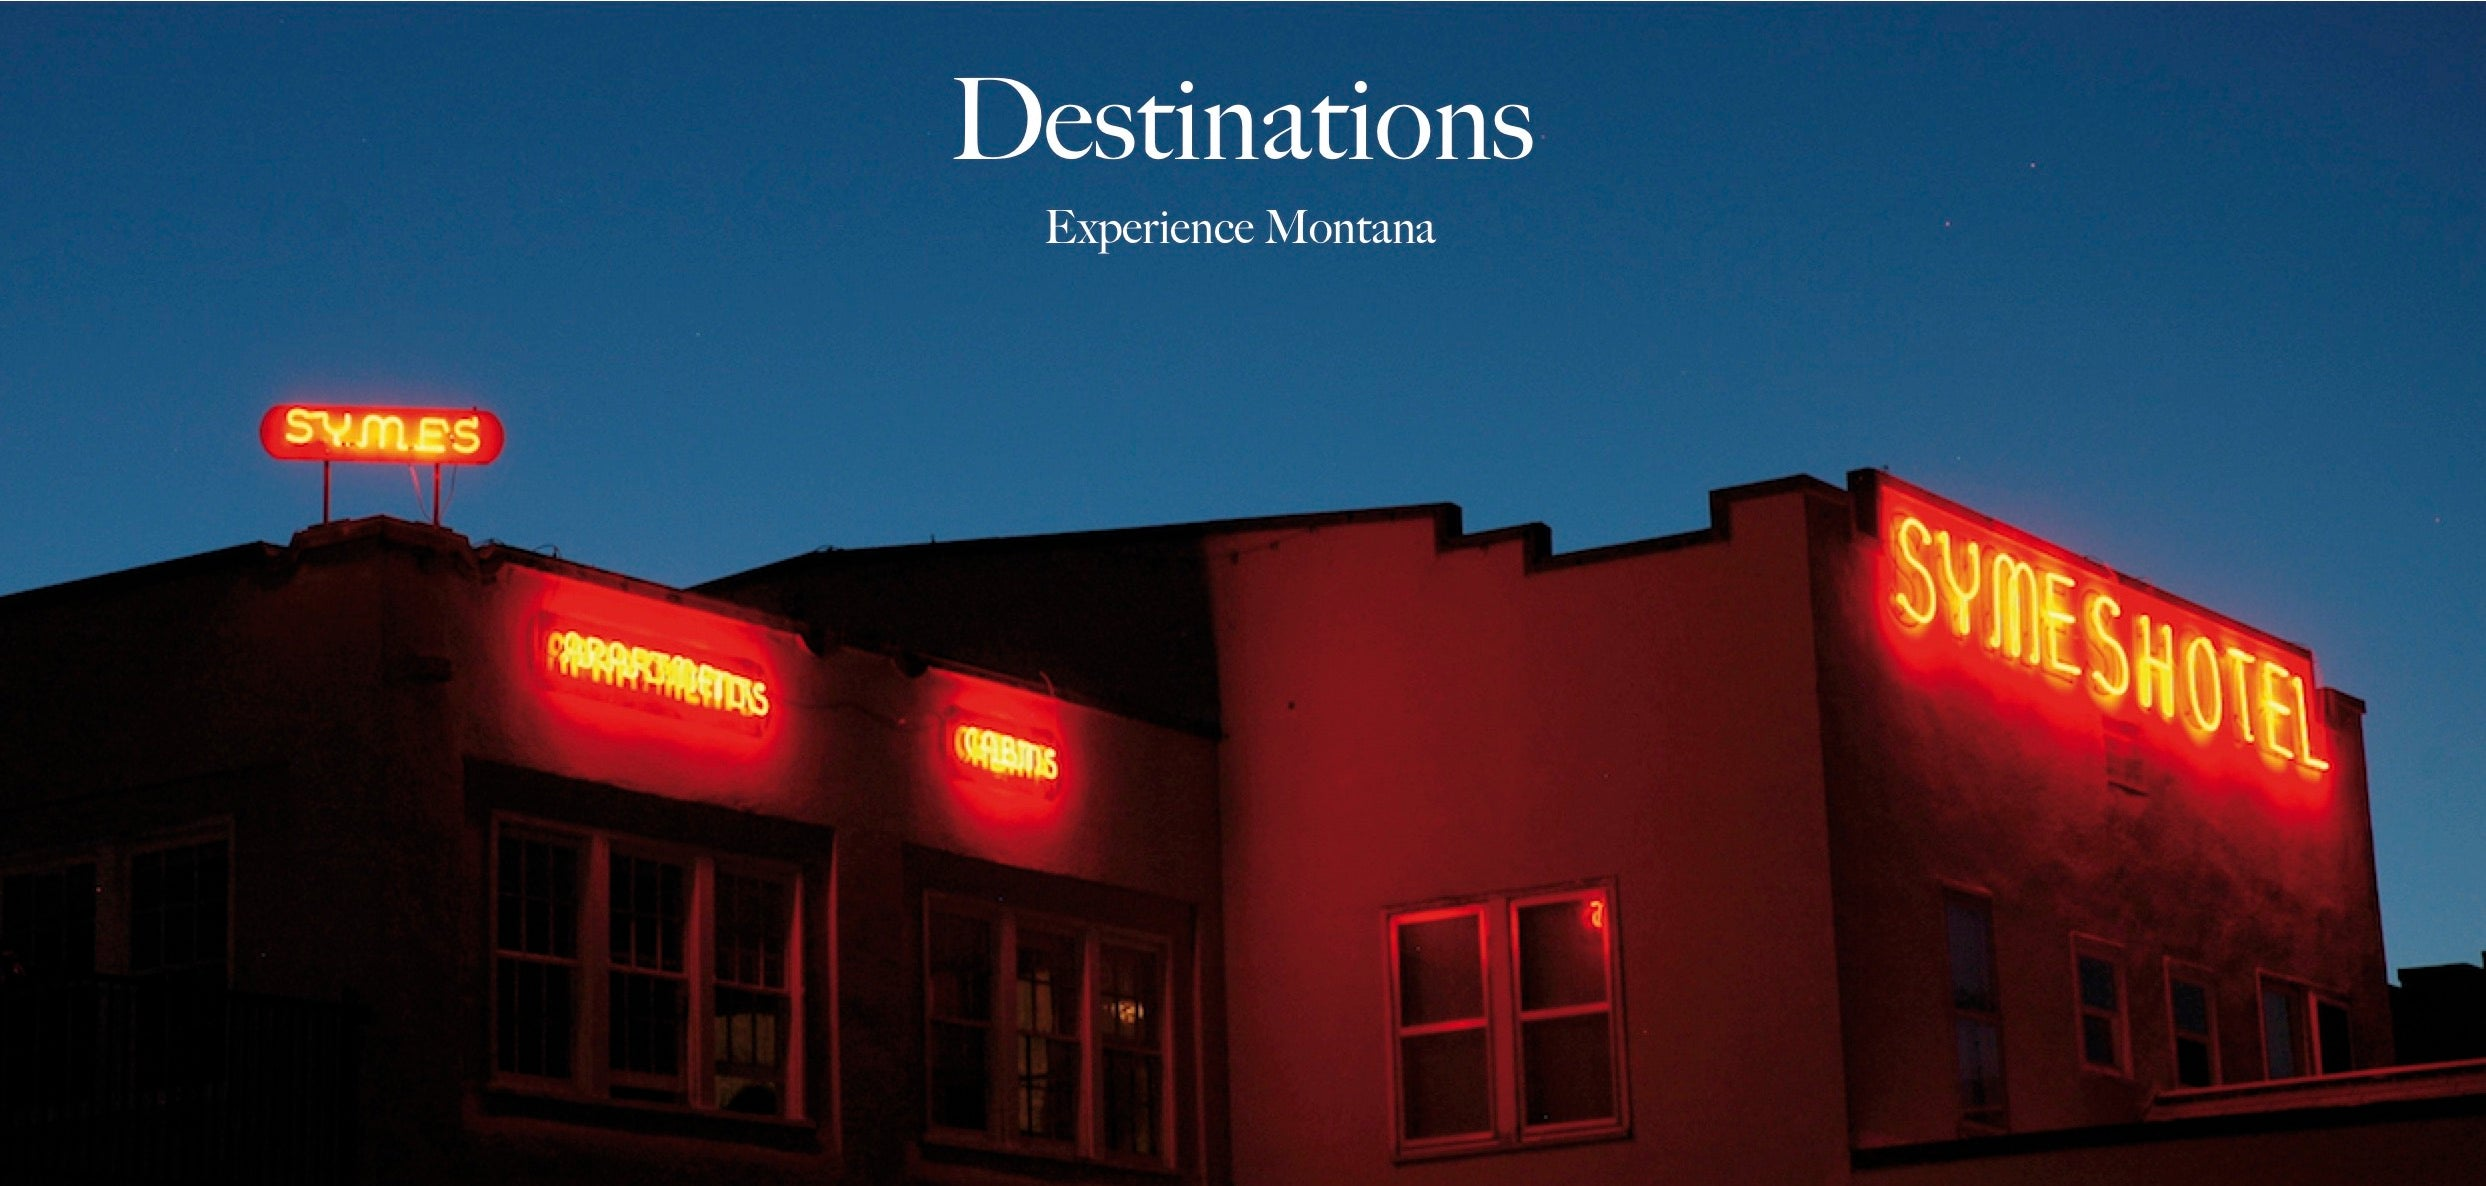 Montana living destinations, symes hotel hot springs, romantic getaways, vacations